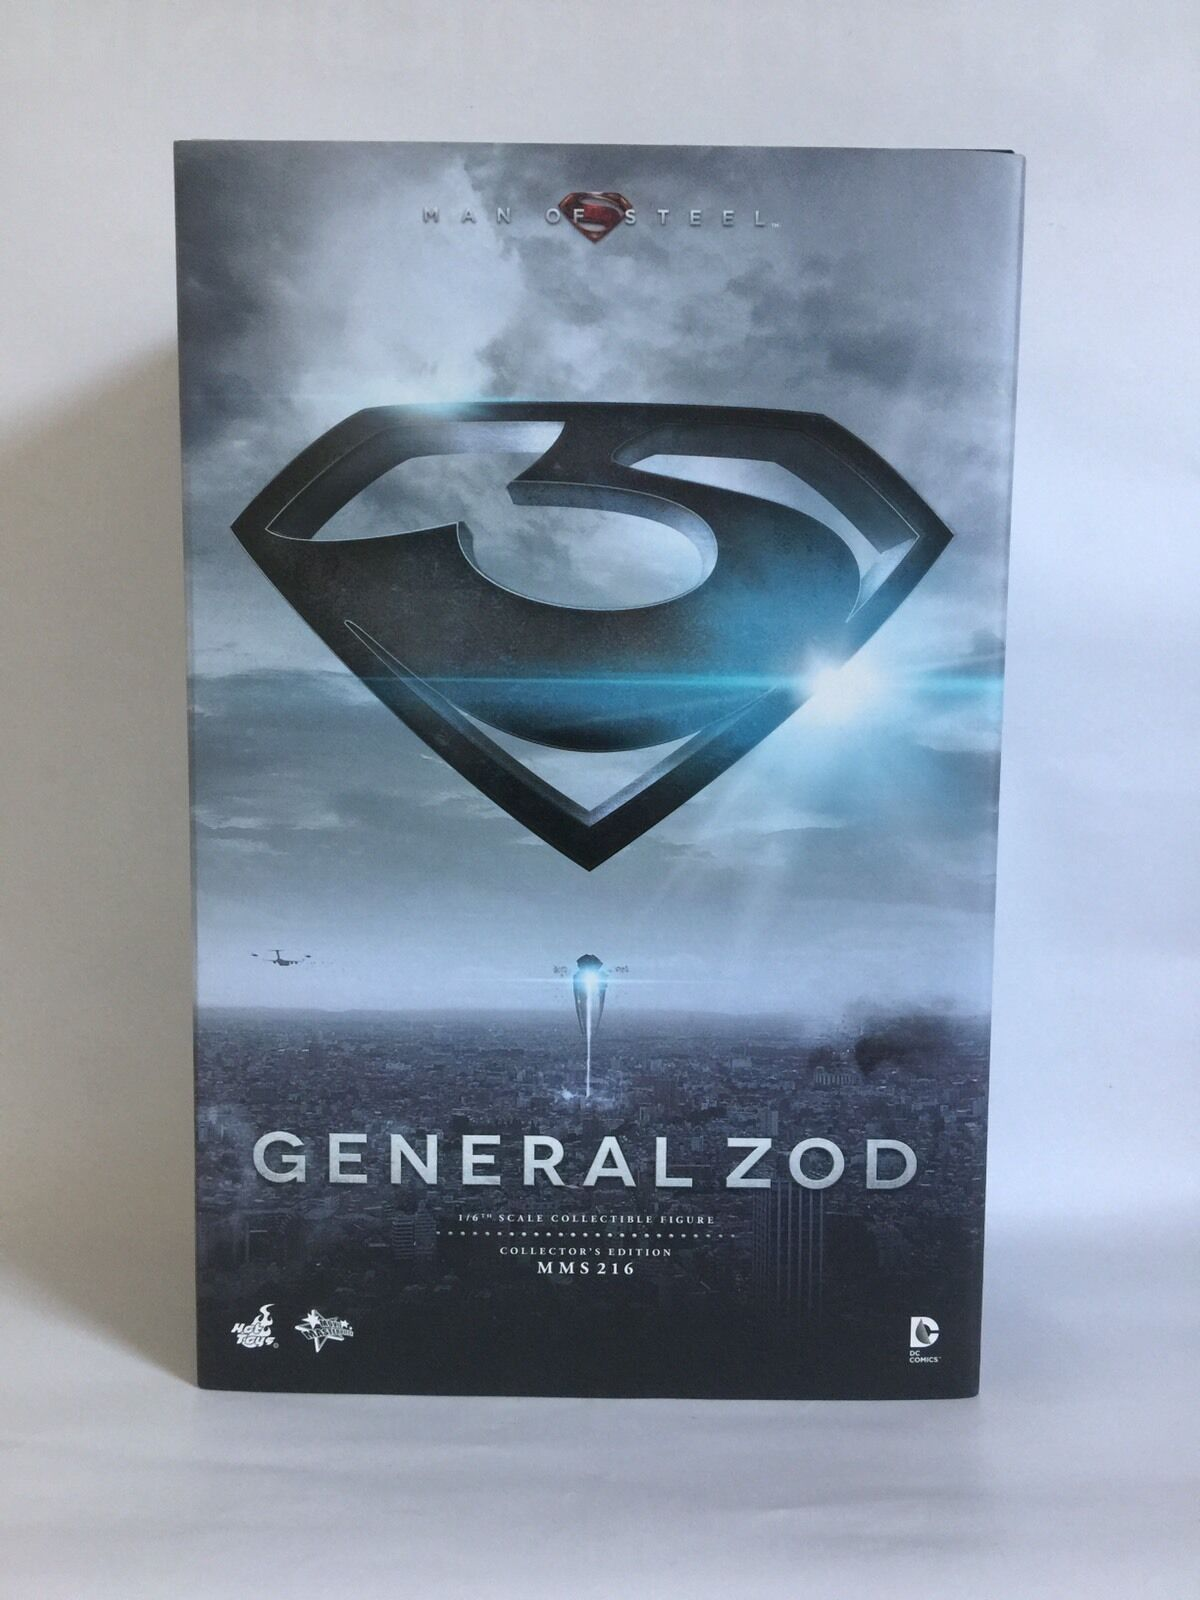 Man Of Steel General Zod 1 1 1 6 Scale Action Figure MMS216 By Hot Toys ff3b2d